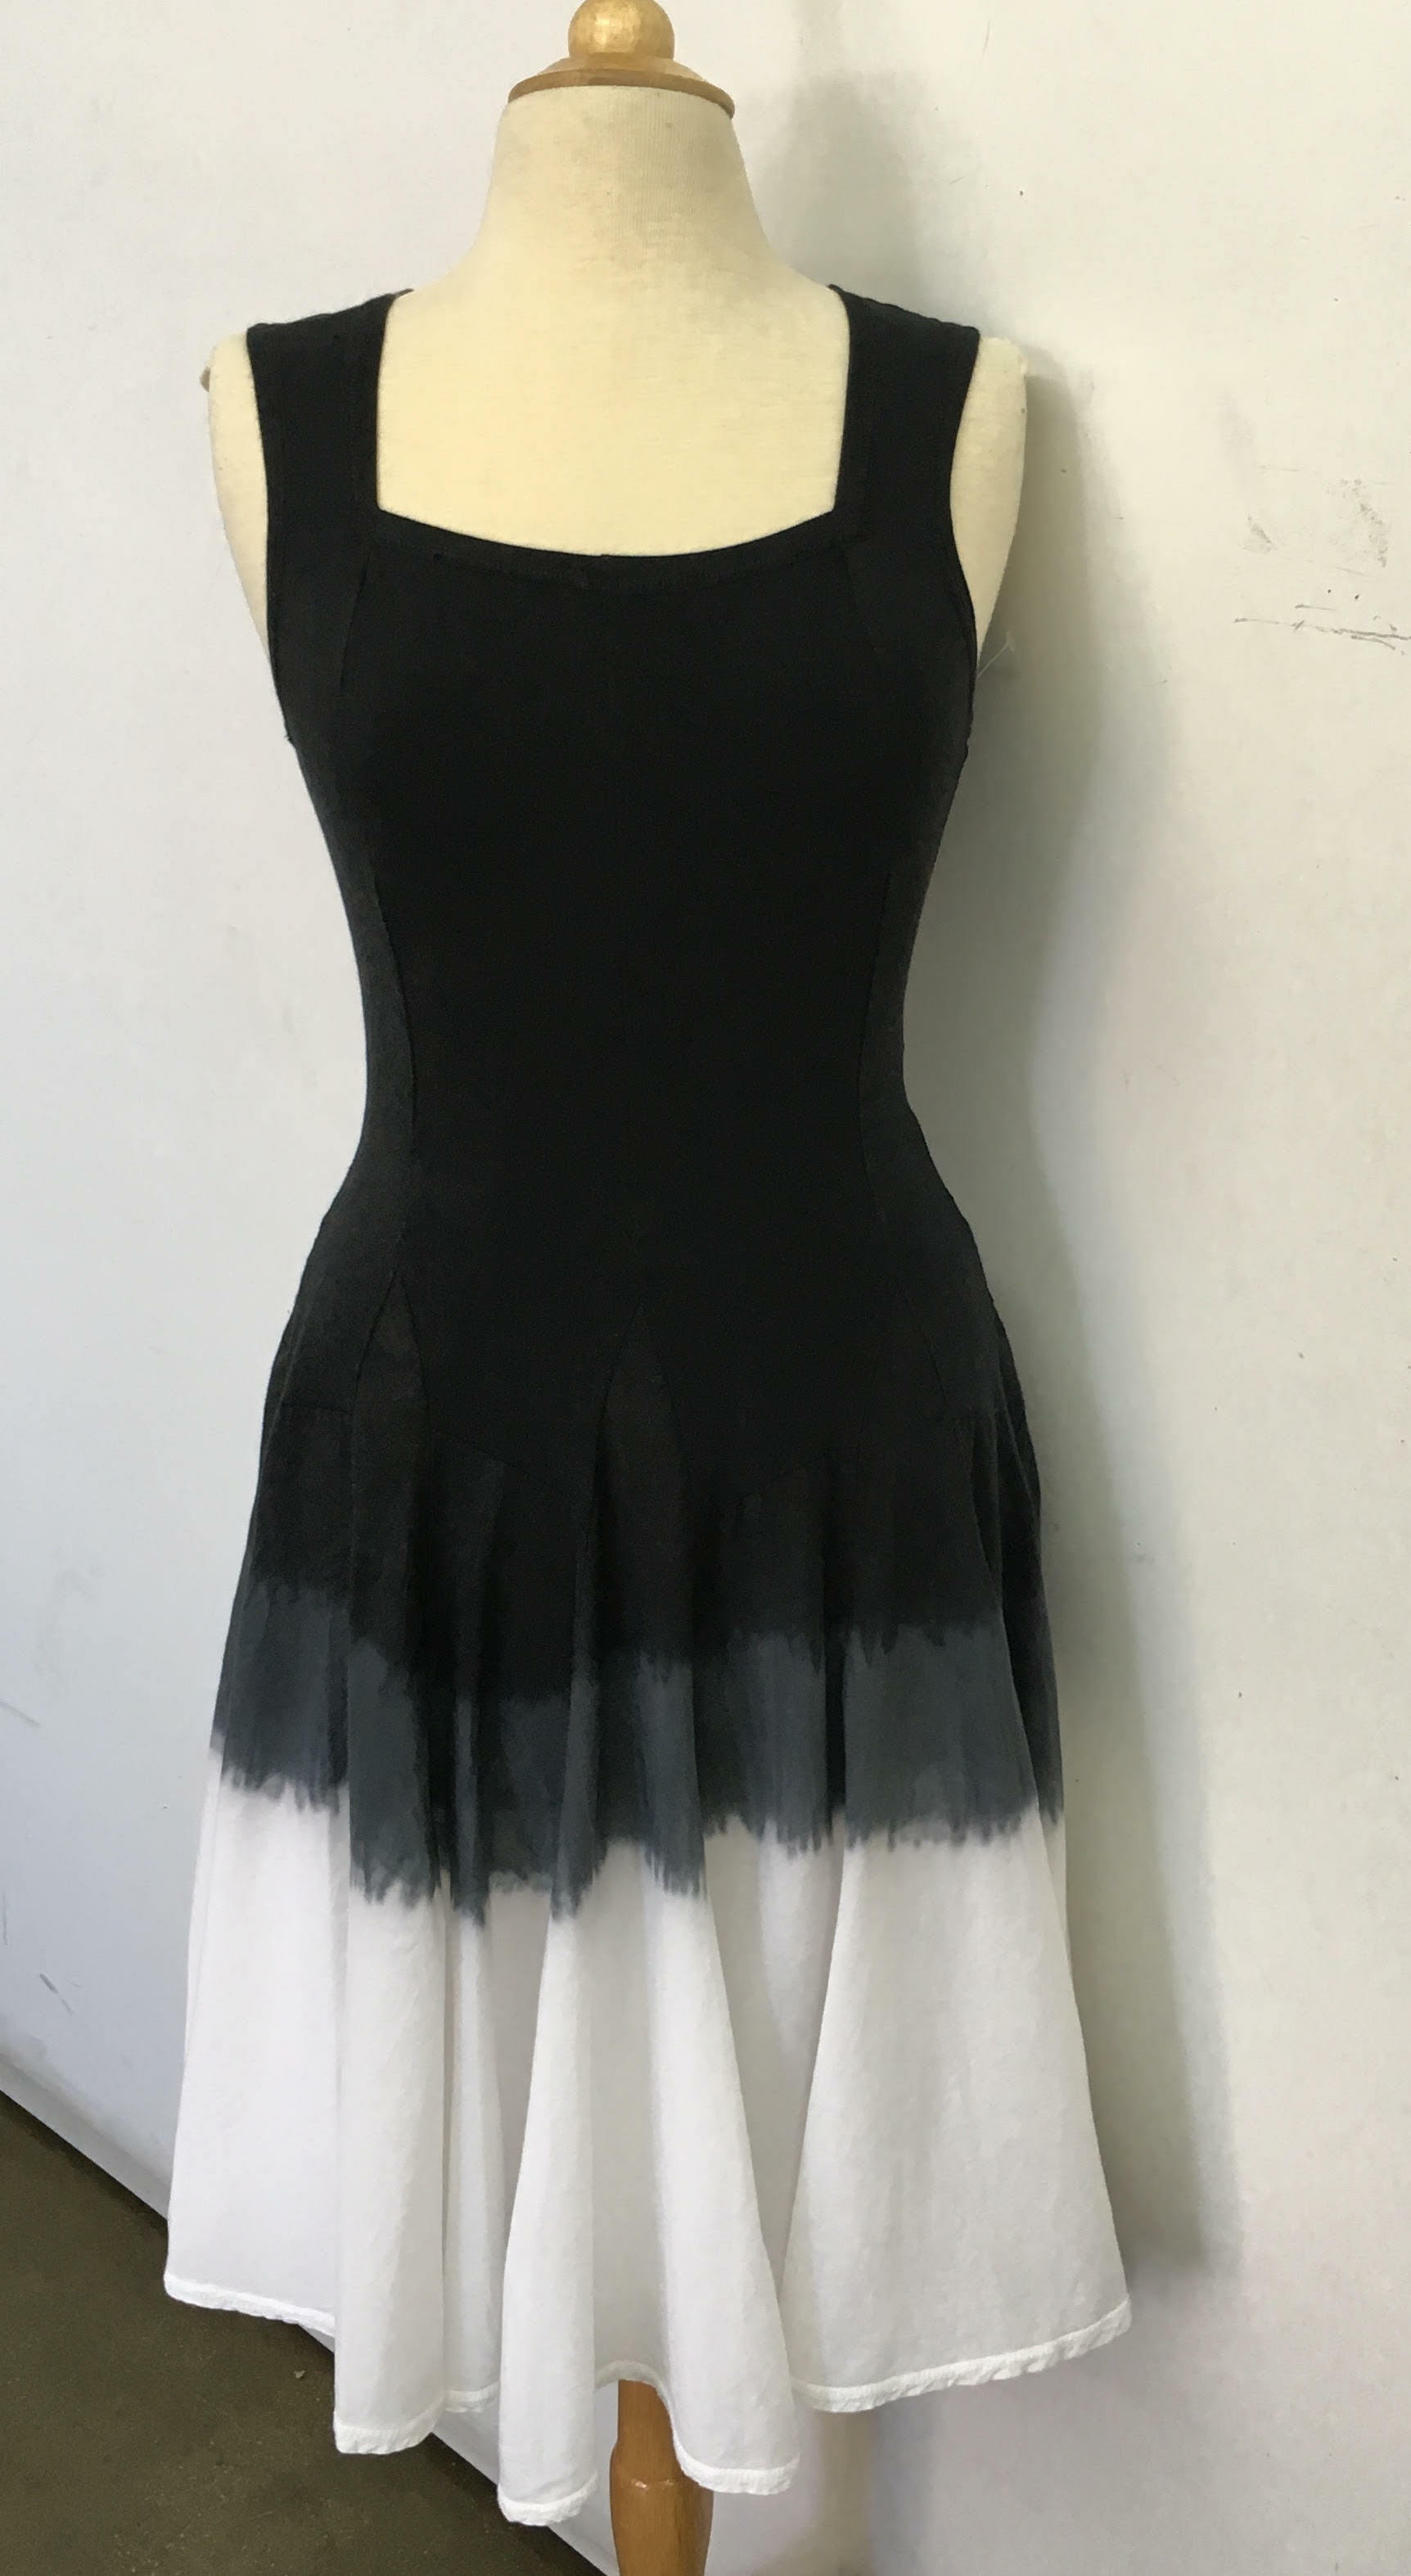 Luna Luz: Godet Dyed Black/White Ombre Square Neck Dress (Ships Immed, 2 Left in Black/White!)